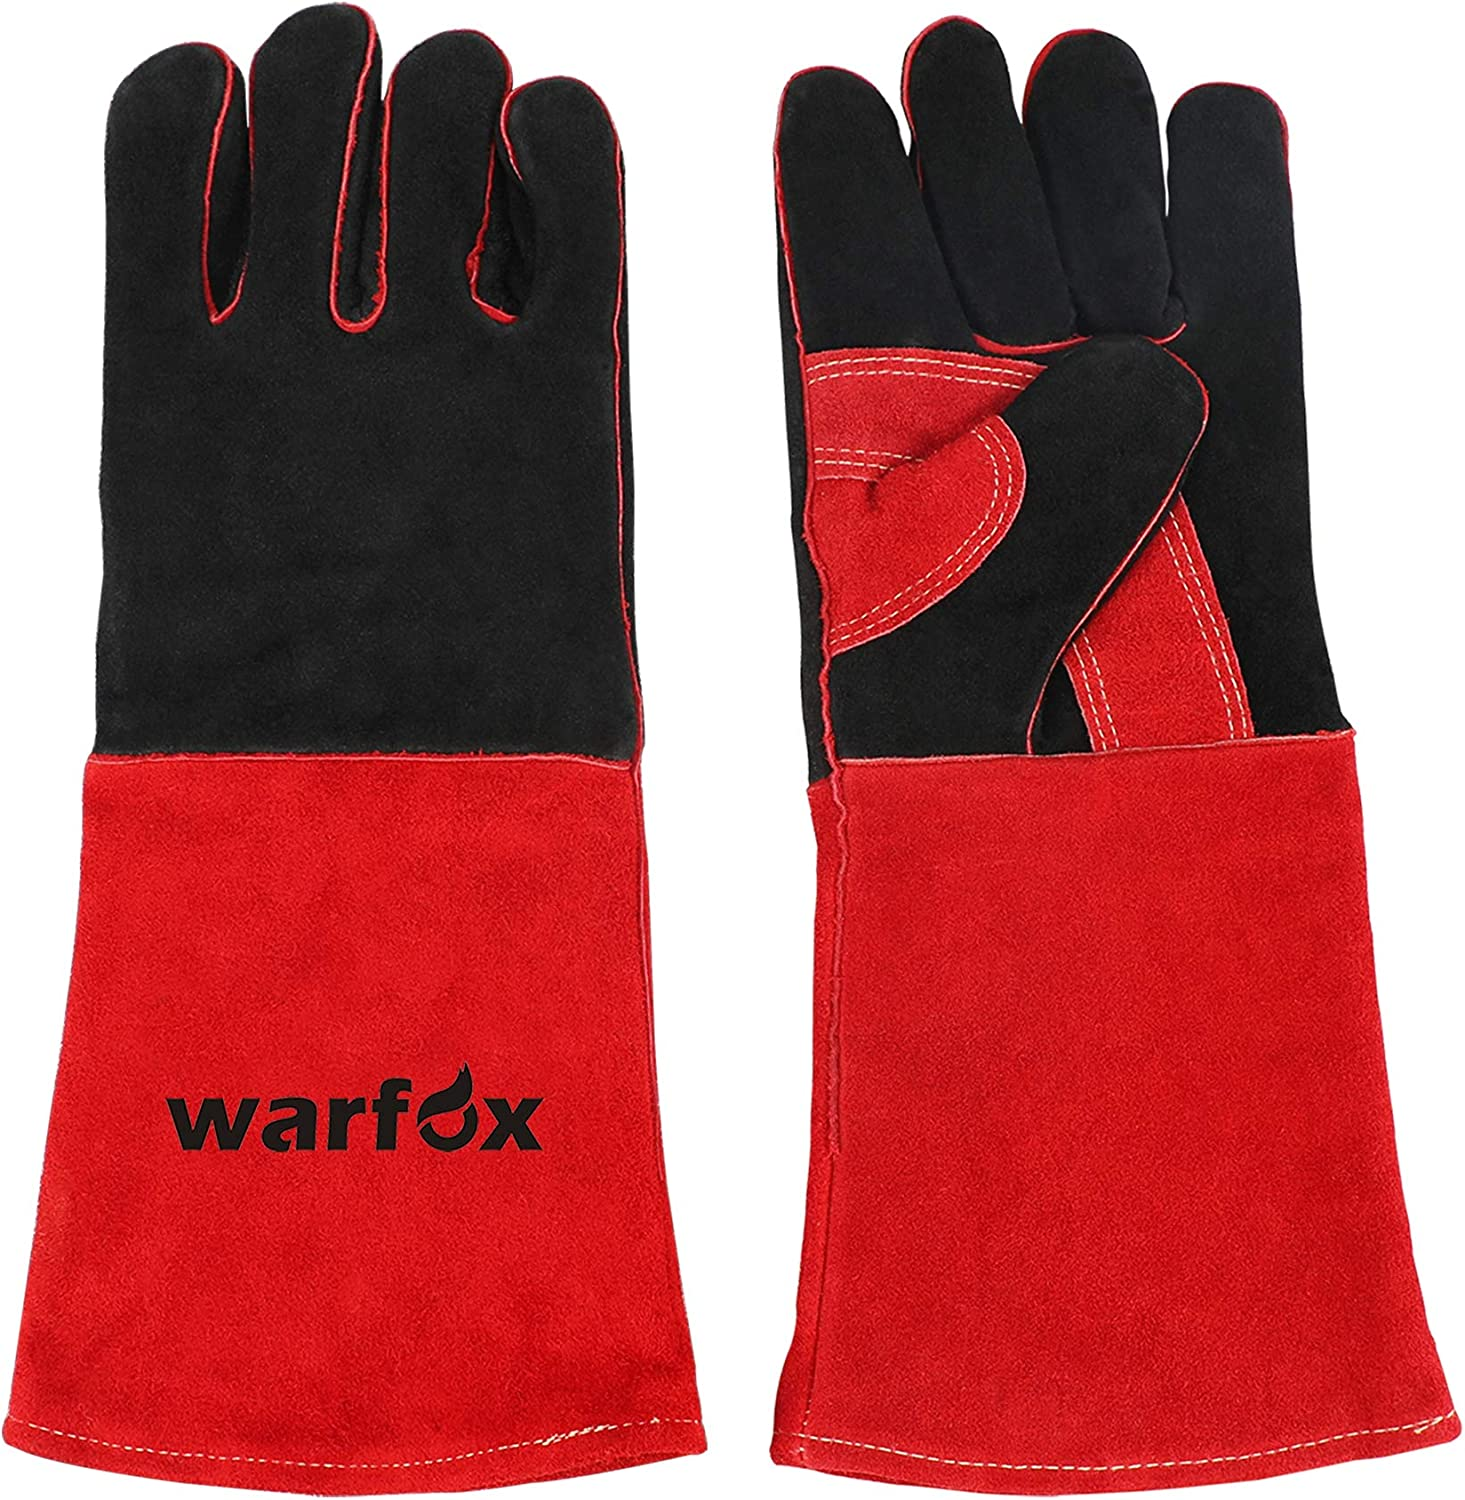 Colorado Springs Mall Leather Welding Gloves for Plasma Cutter Popular products Tig Welder Stick Ov Mig